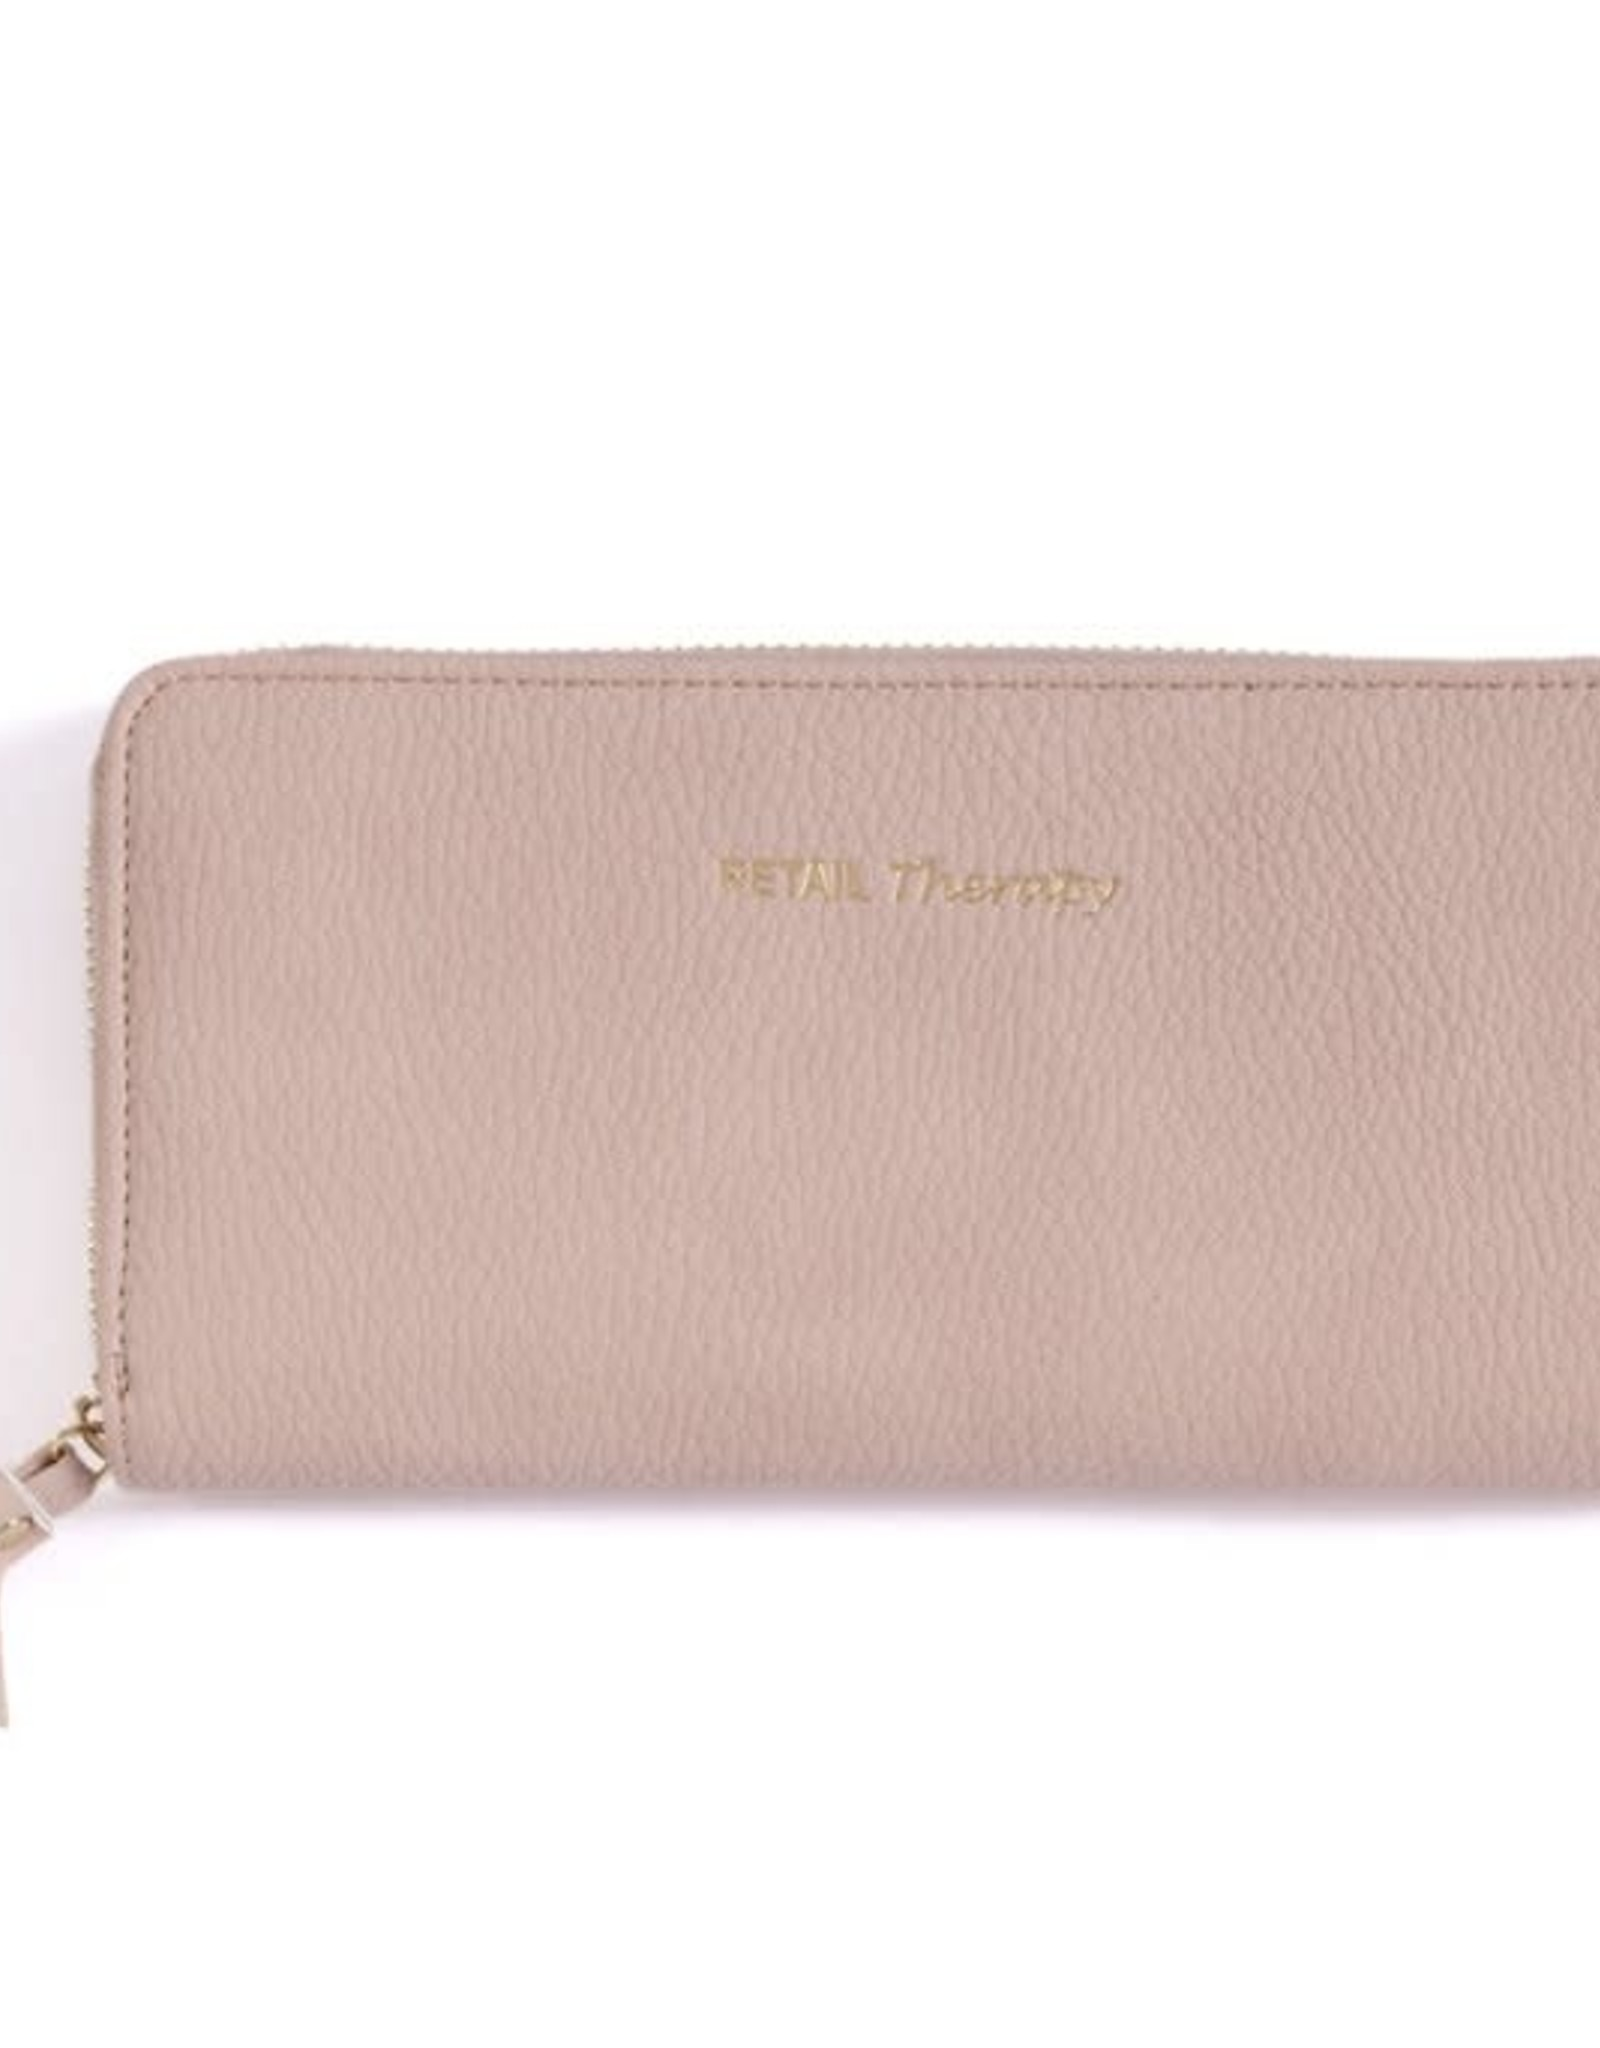 Retail Therapy Wallet